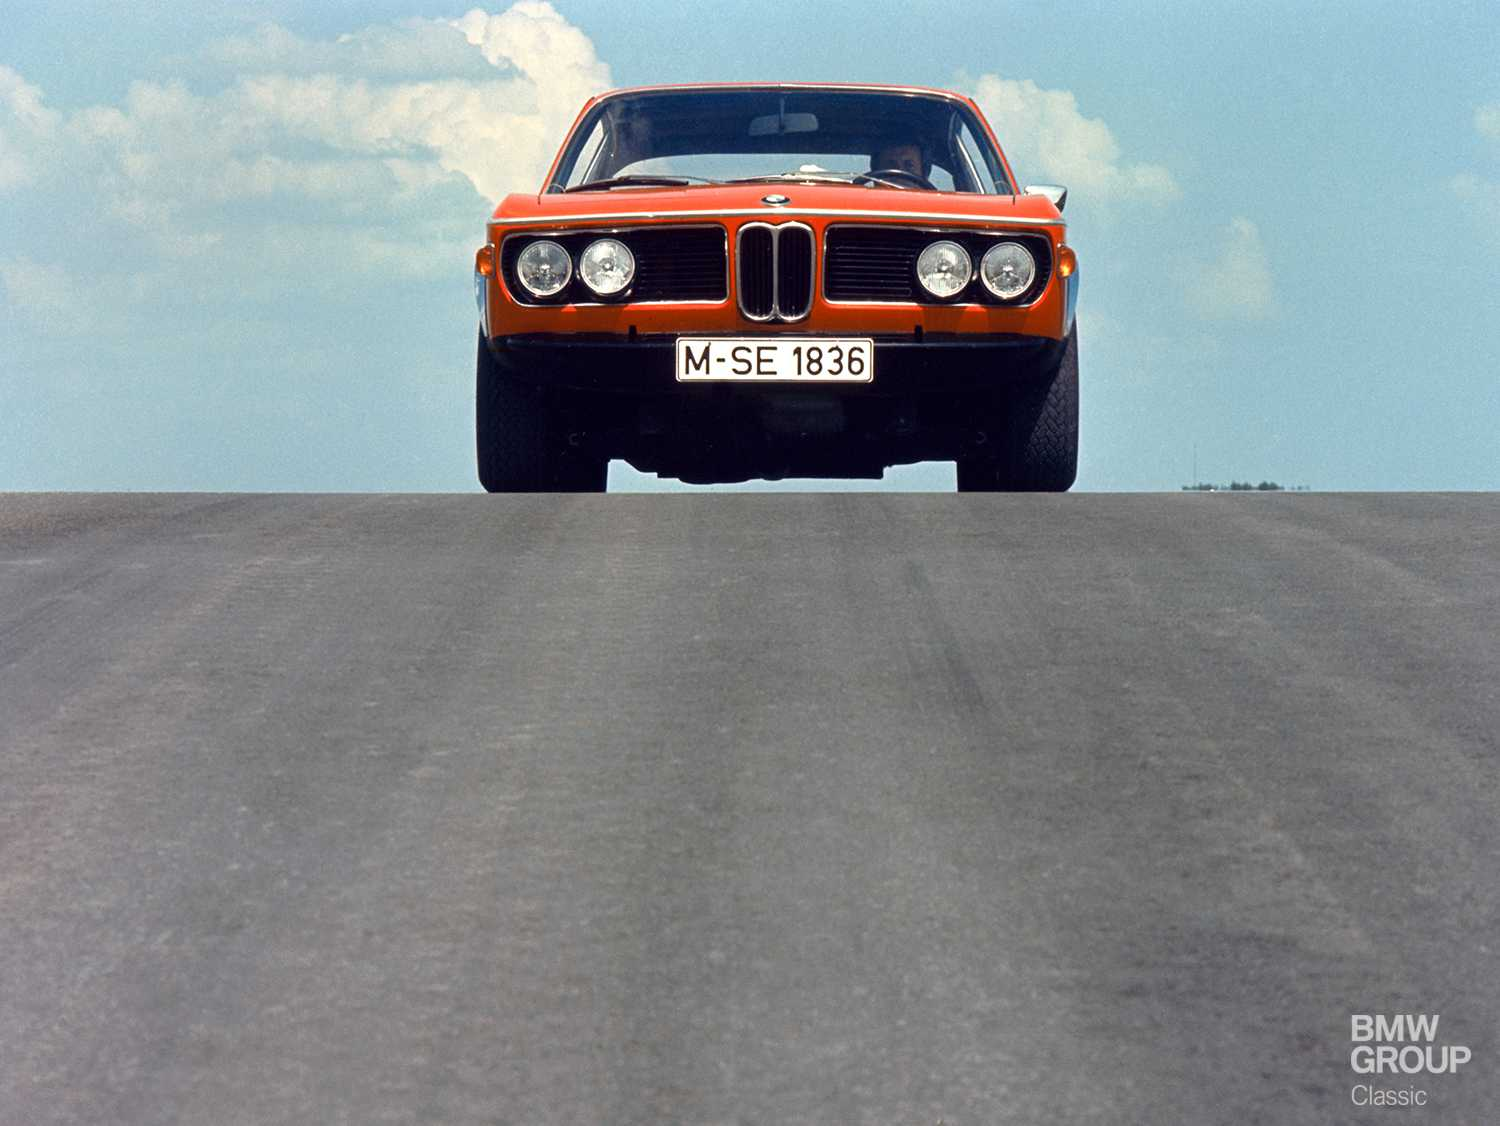 Its Classic 3.0 >> 1 13 Winning Light The Bmw 3 0 Csl Less Is More To